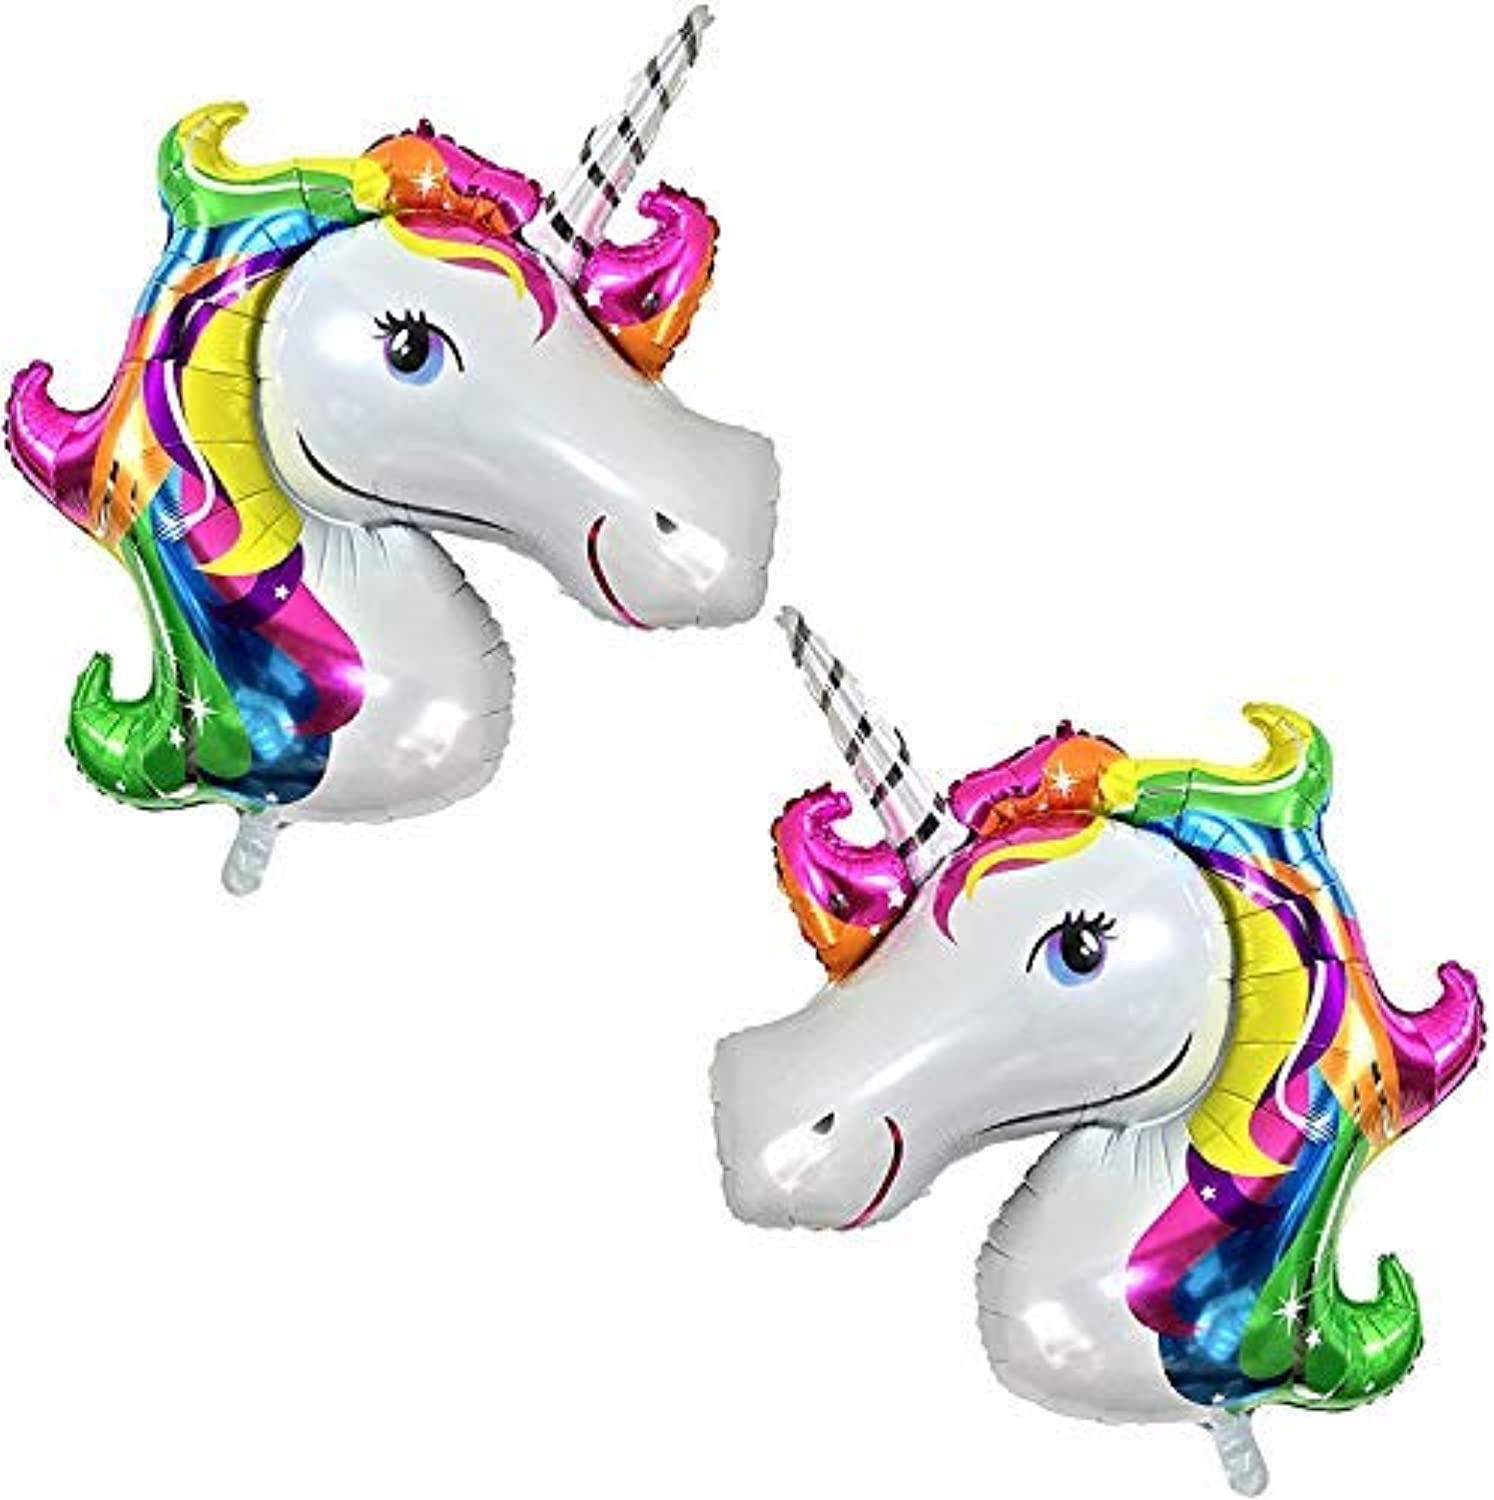 Rainbow Unicorn Balloons Birthday Backdrop  Large, Pack of 2   Mylar Foil Balloon Decorations Supplies Kit   Great Unicorn Themed Bday Party Favor, Baby Shower, Home Office Décor